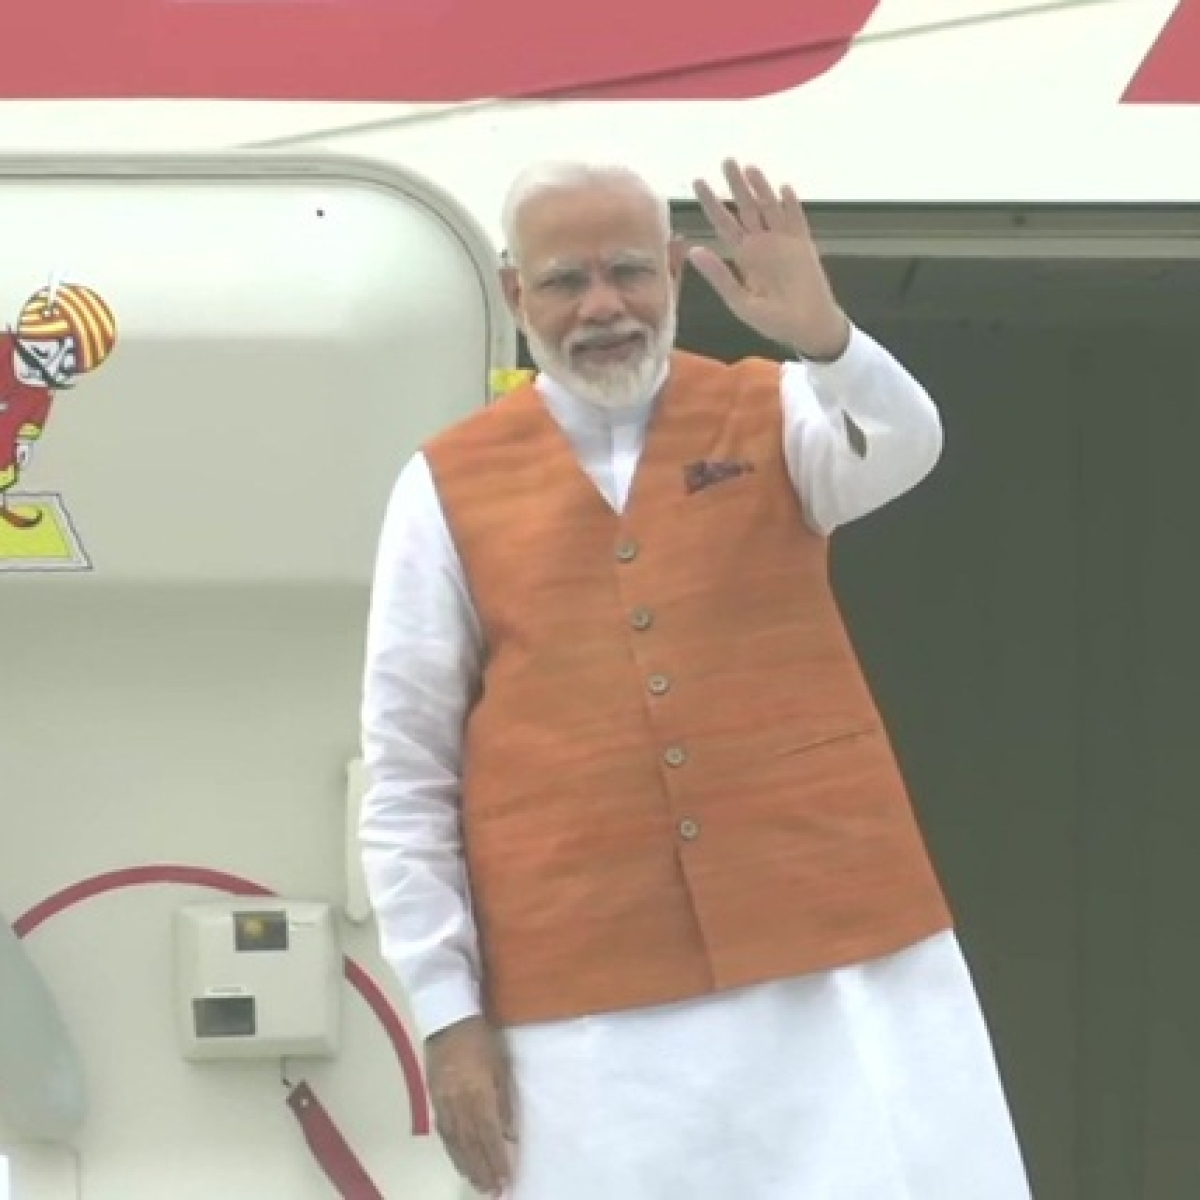 PM Narendra Modi heads on 3-day Thailand visit, to address 'Sawasdee PM Modi' community programme